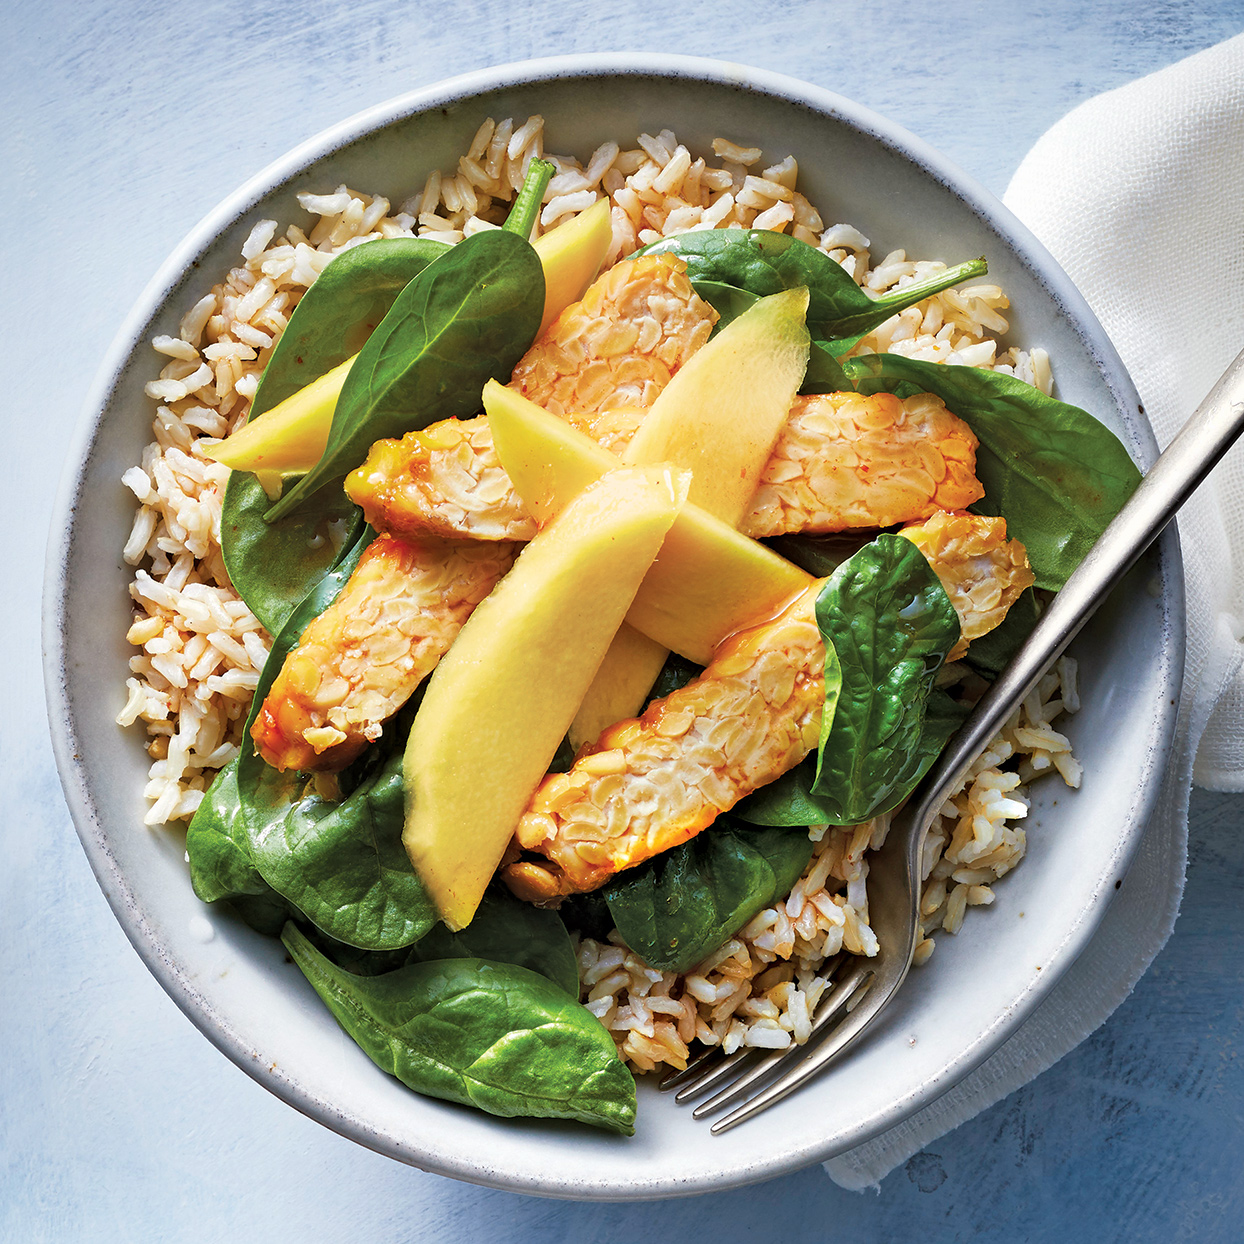 Making a flavorful, well-balanced meatless dish doesn't get simpler than this. Sweet mango is the right complement to the earthy tempeh. A drizzle of the sweet and salty cooking liquid is the perfect addition of moisture and brightness.